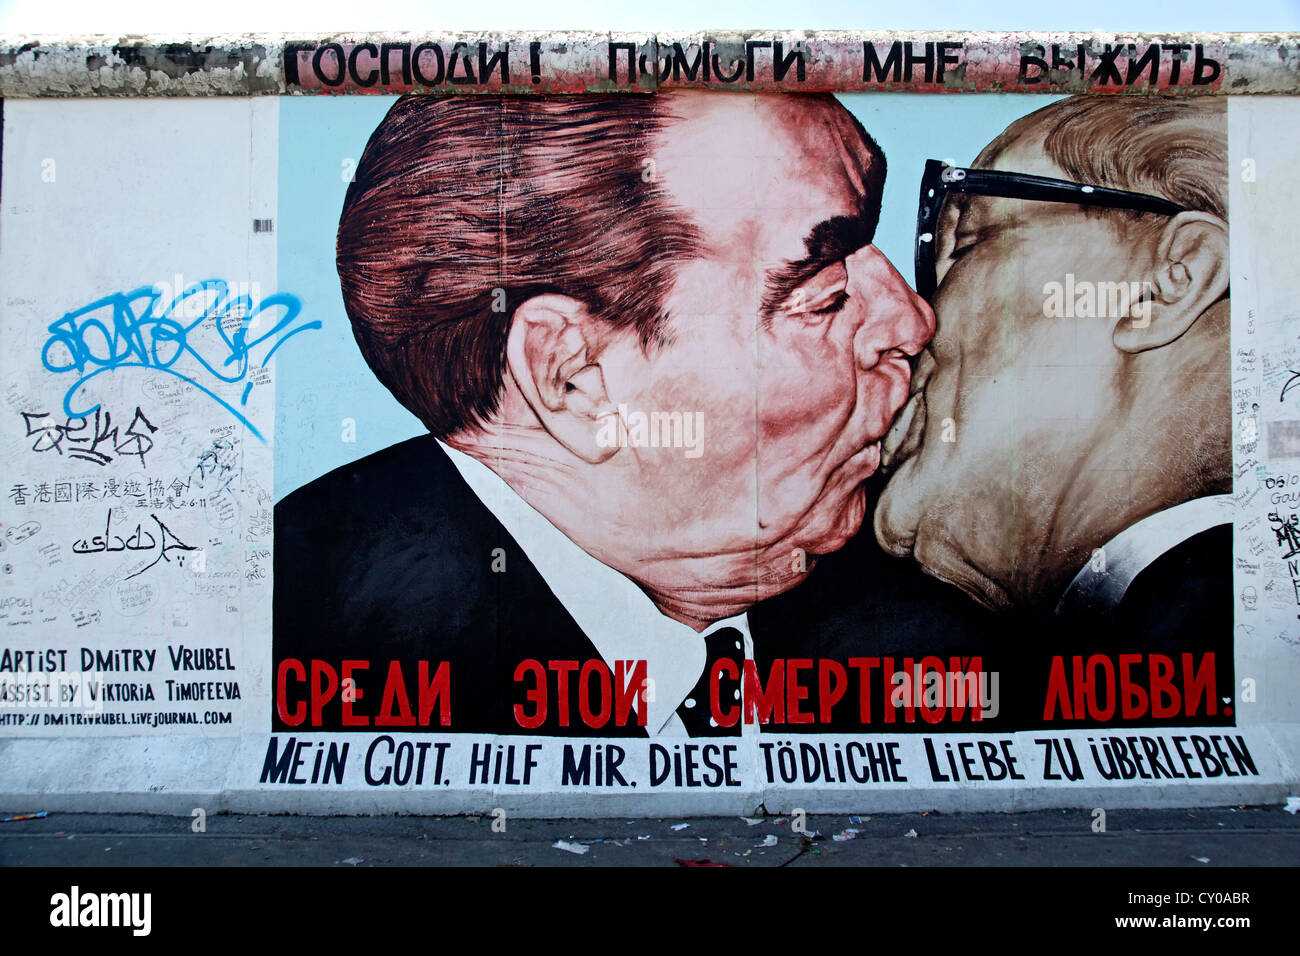 Fraternal kiss between Leonid Brezhnev and Erich Honecker, painting by Dmitri Vrubel Vladimirovich, remainder of - Stock Image